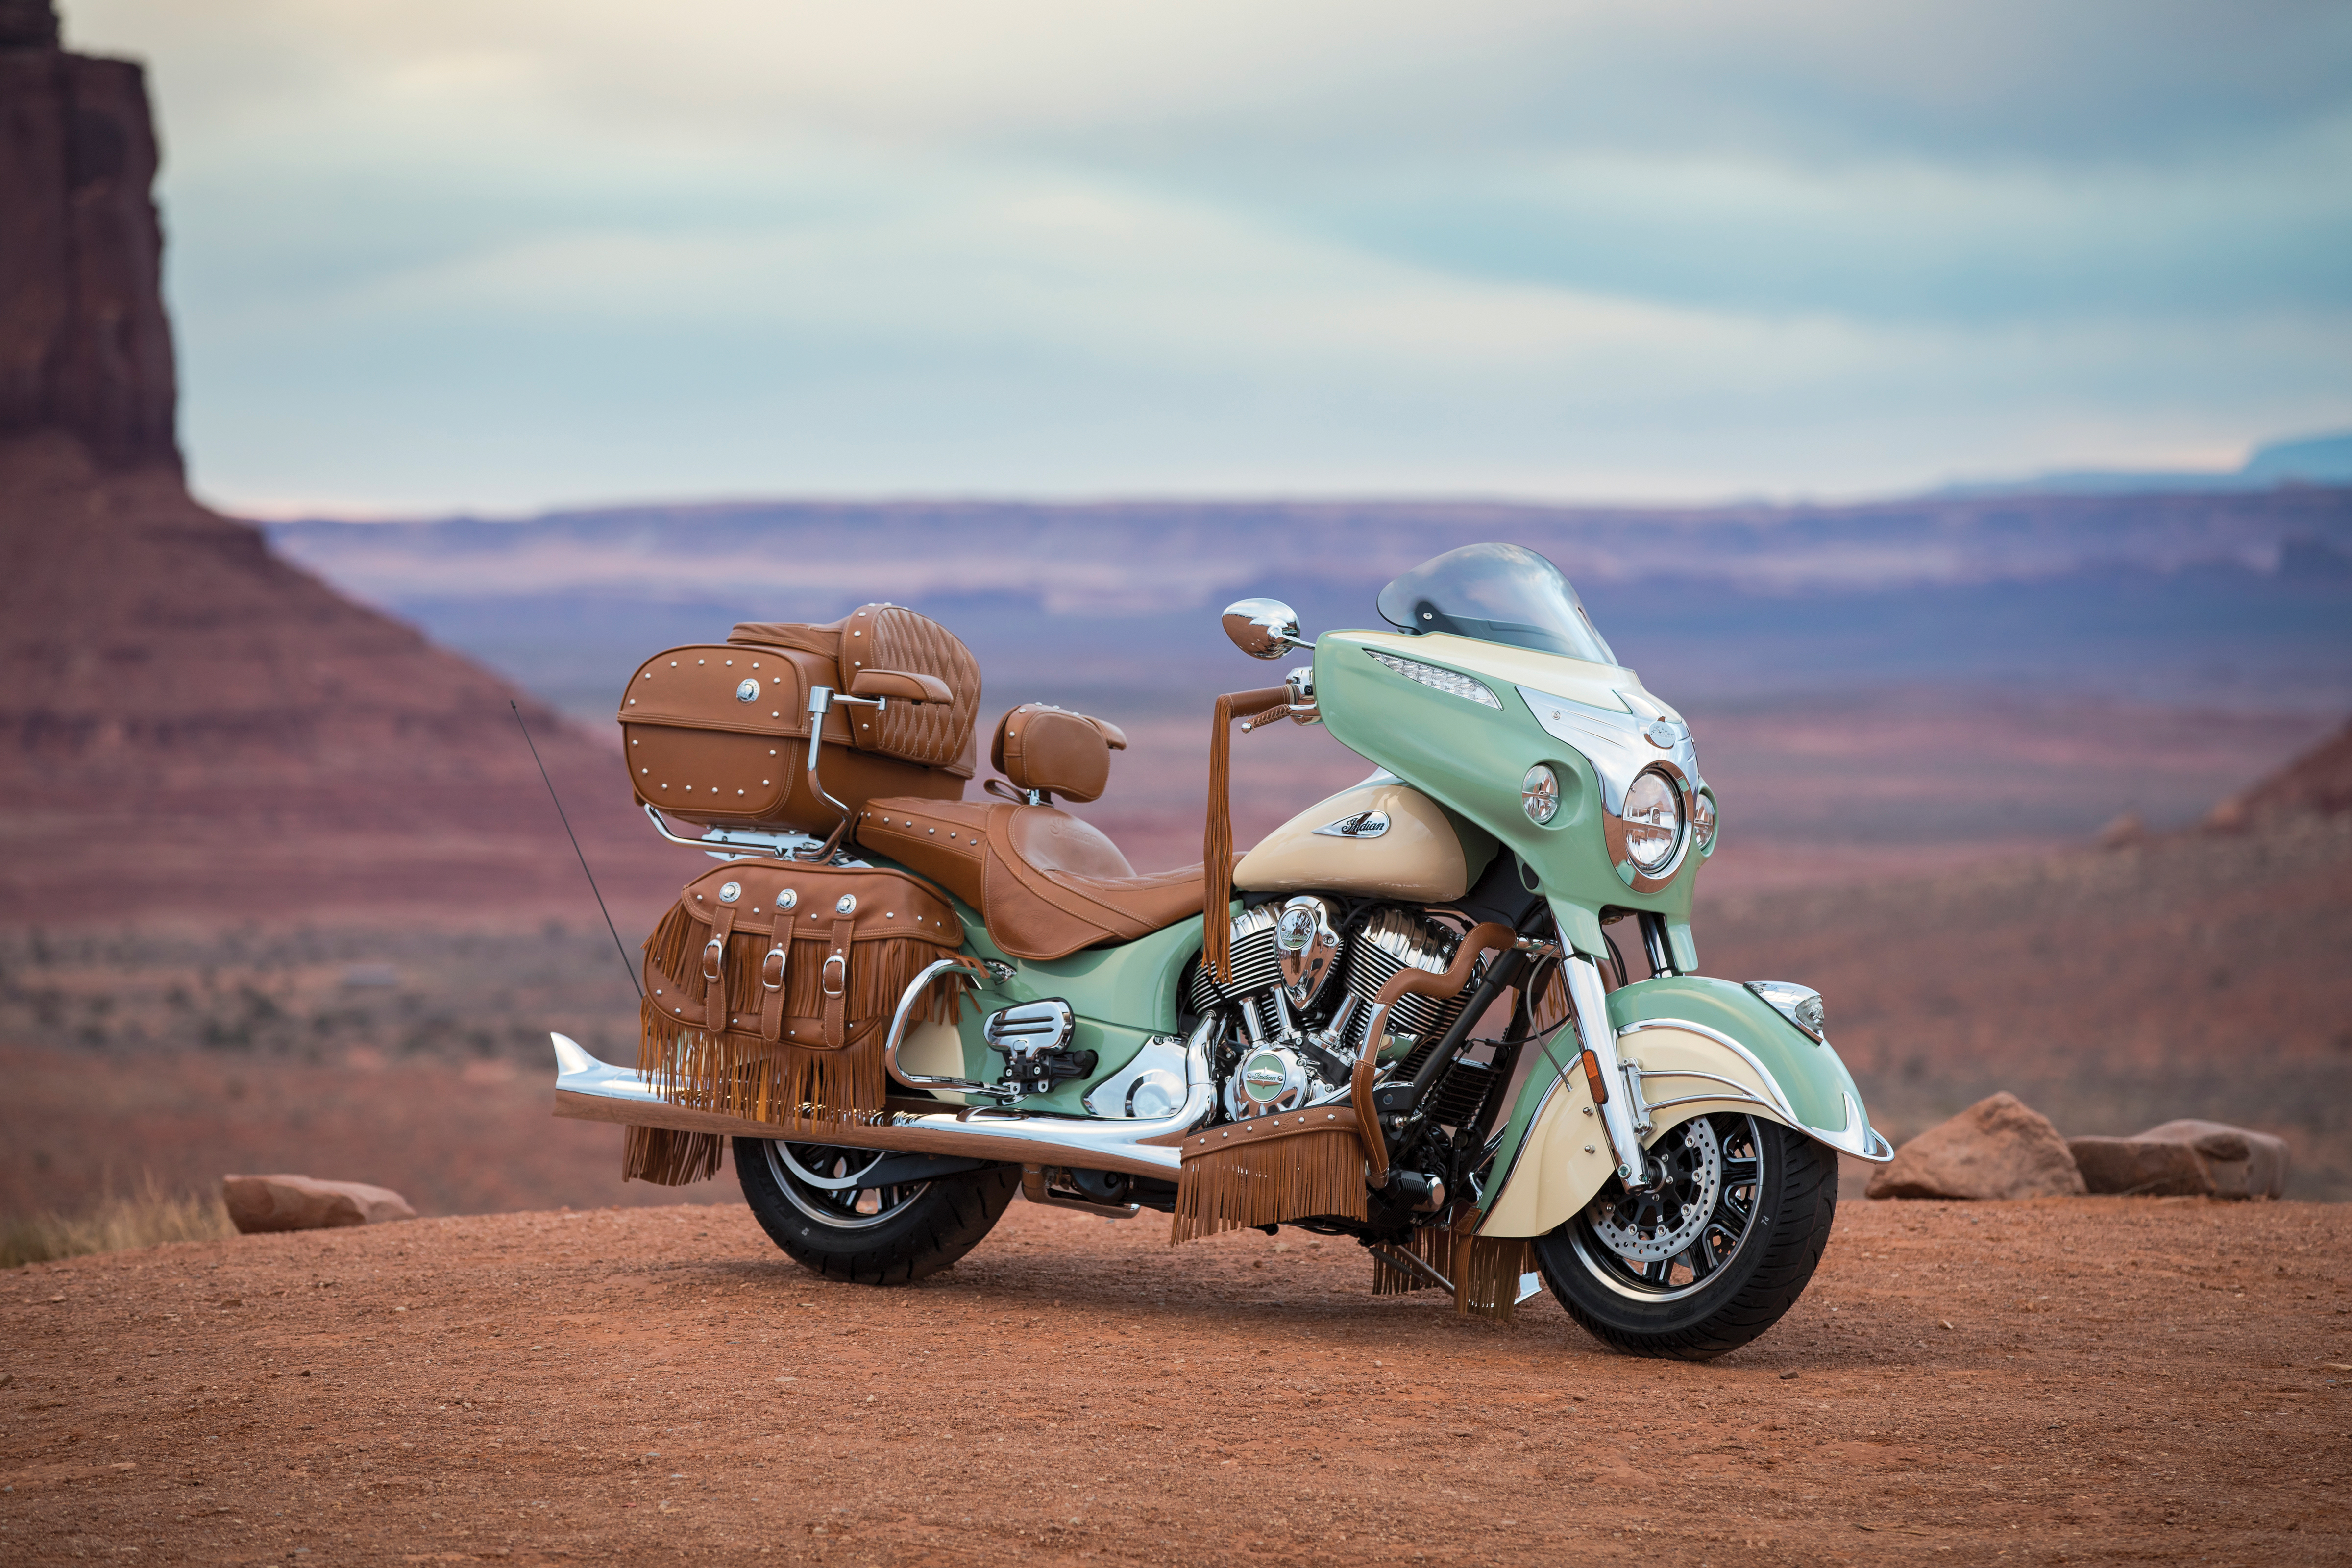 2017 Roadmaster Classic | Indian Motorcycle Media EMEA